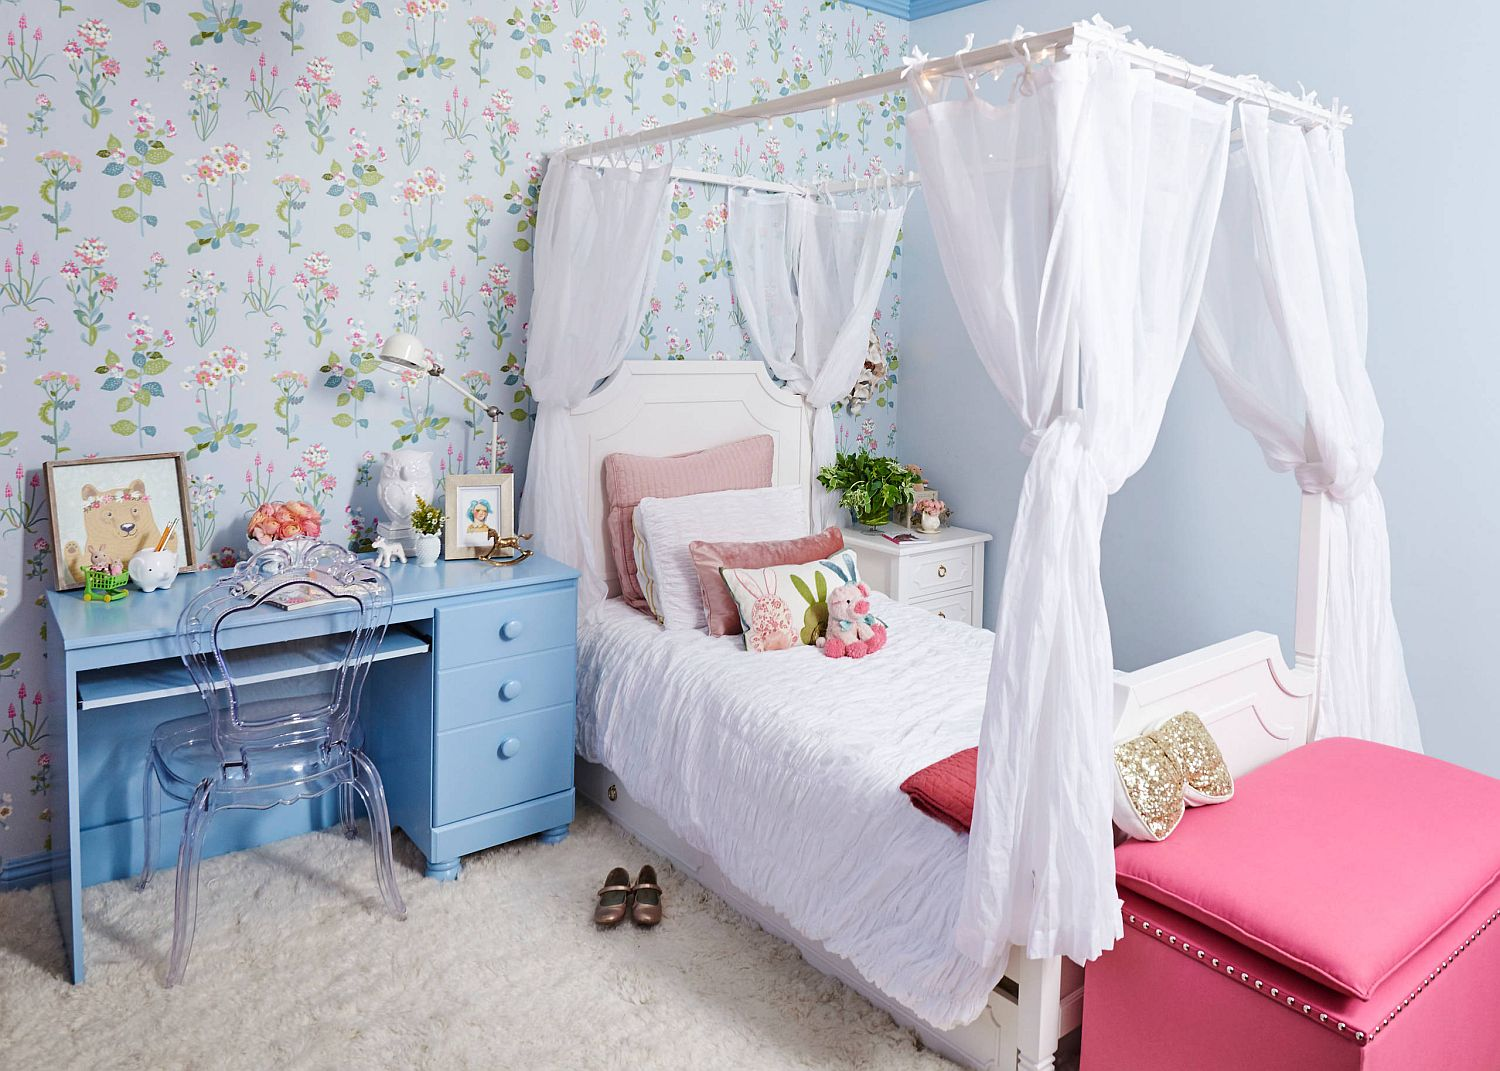 Picture-perfect shabby chic bedroom feels both modern and unique